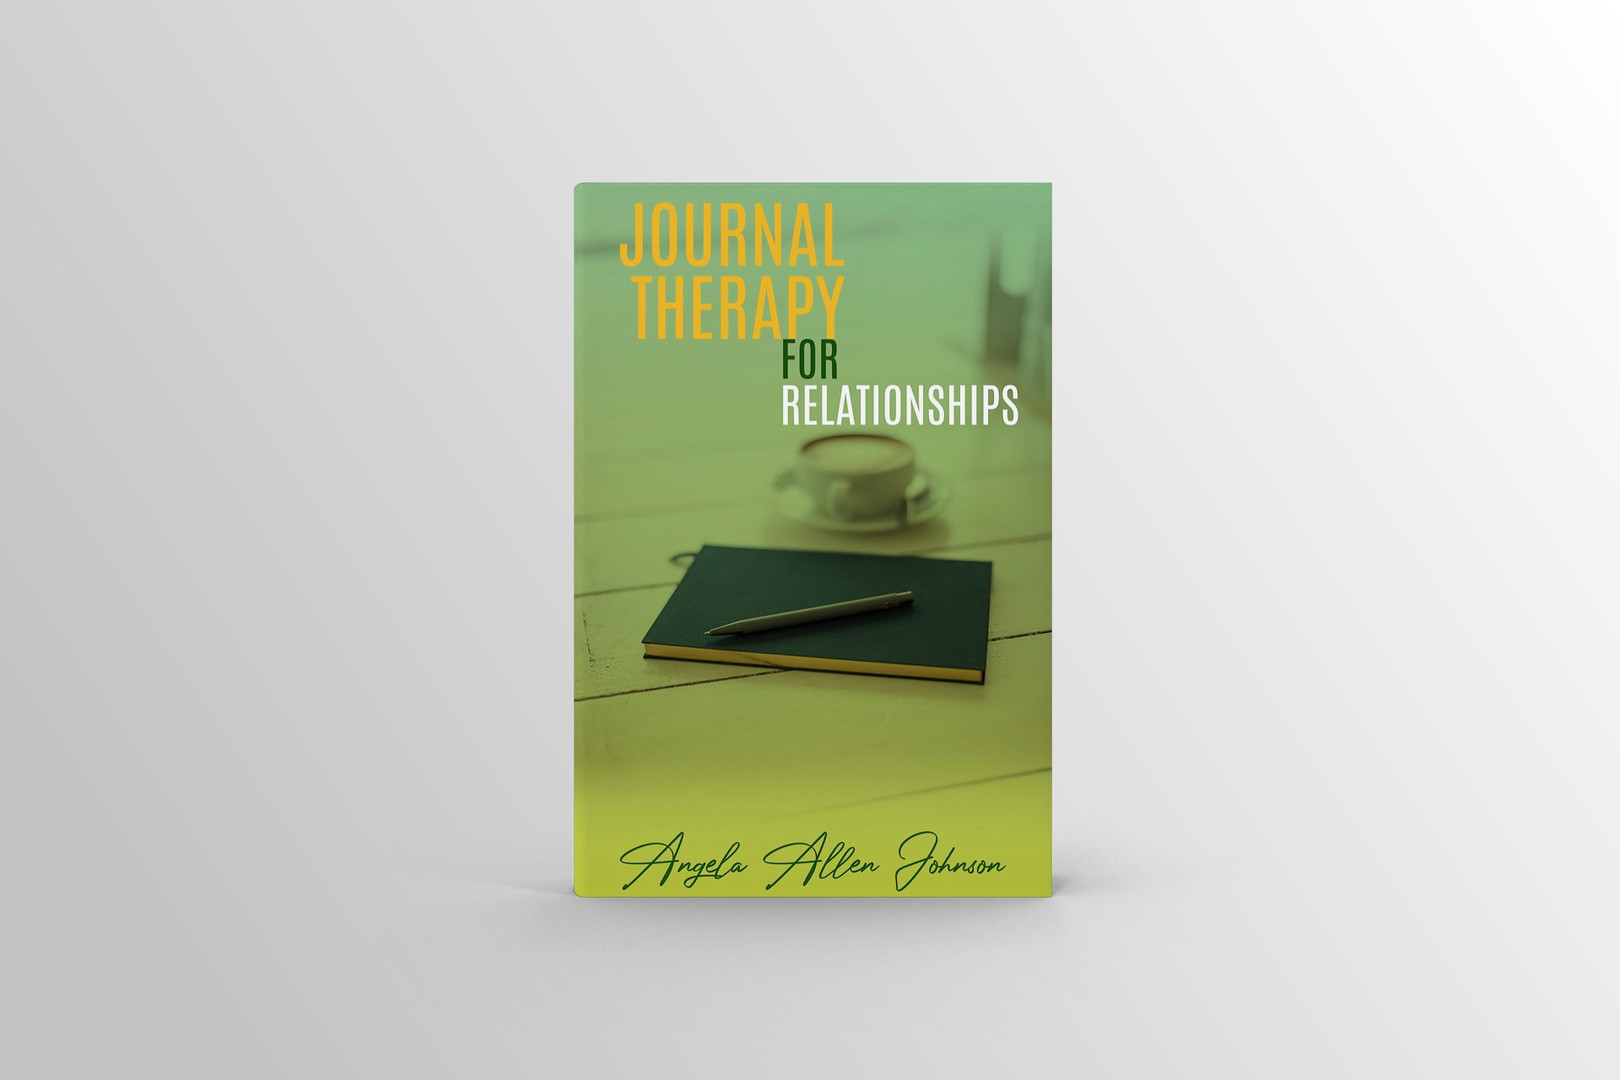 Journal Therapy for Relationships